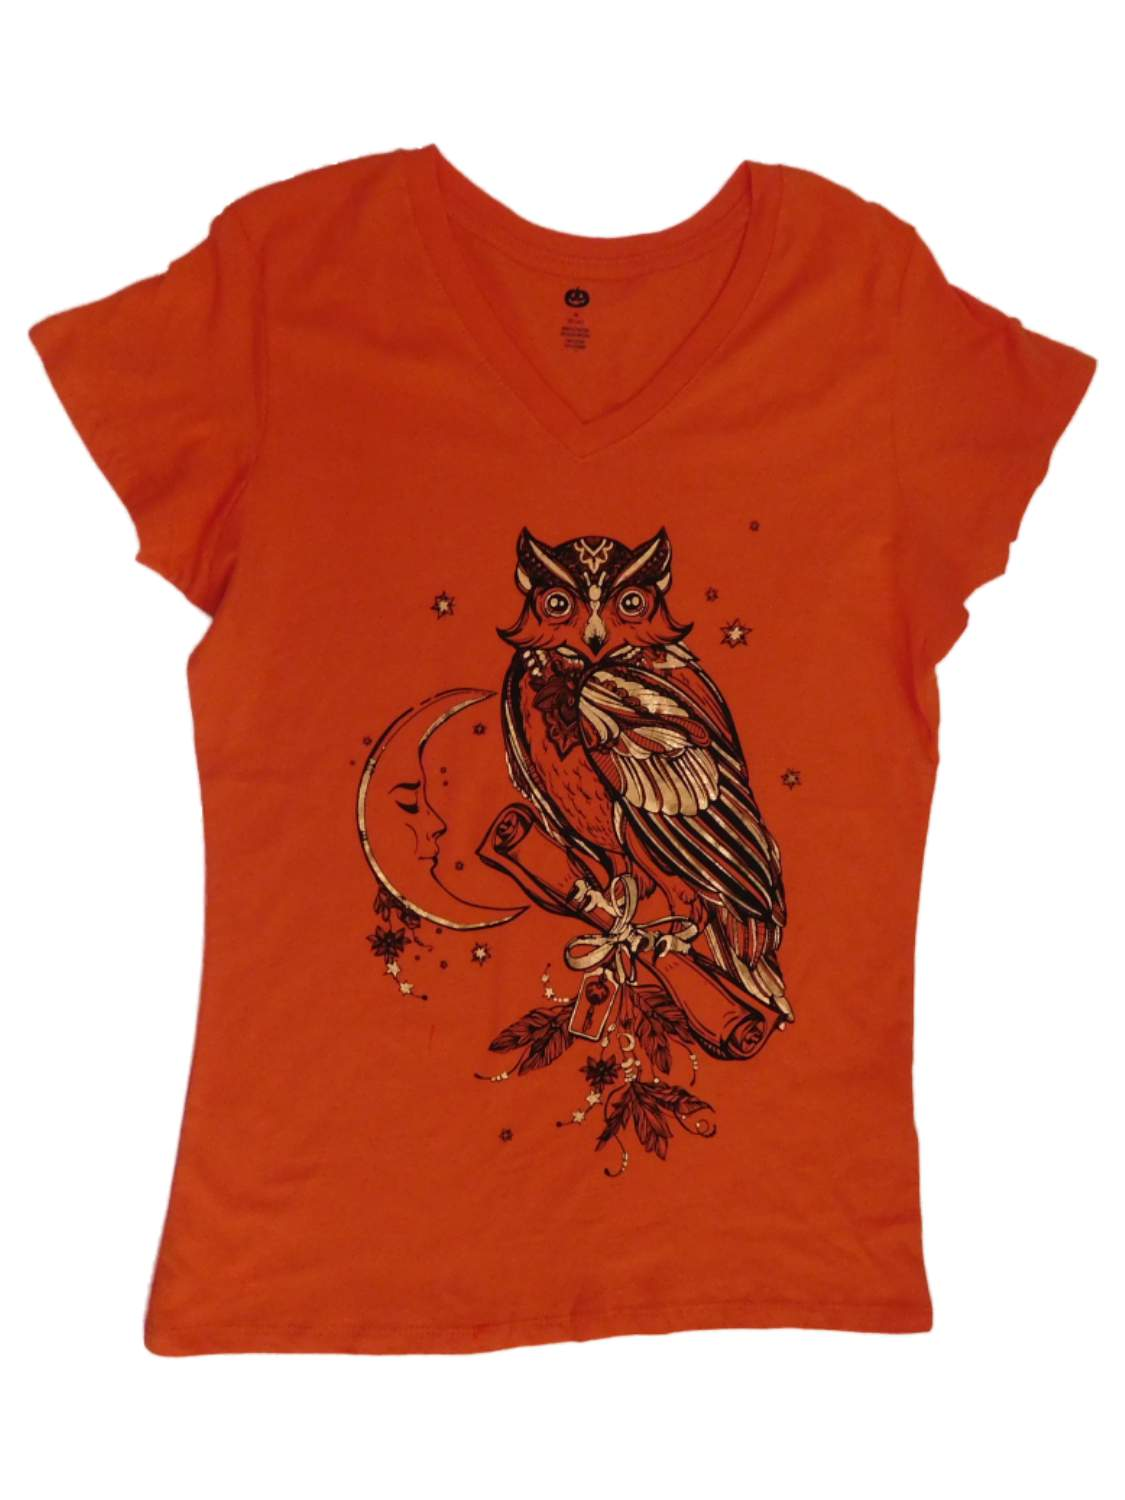 3D Printed T-Shirts an of Halloween Tree with Pumpkins and Owl in Front Full Moon Short Sleeve Tops Tees